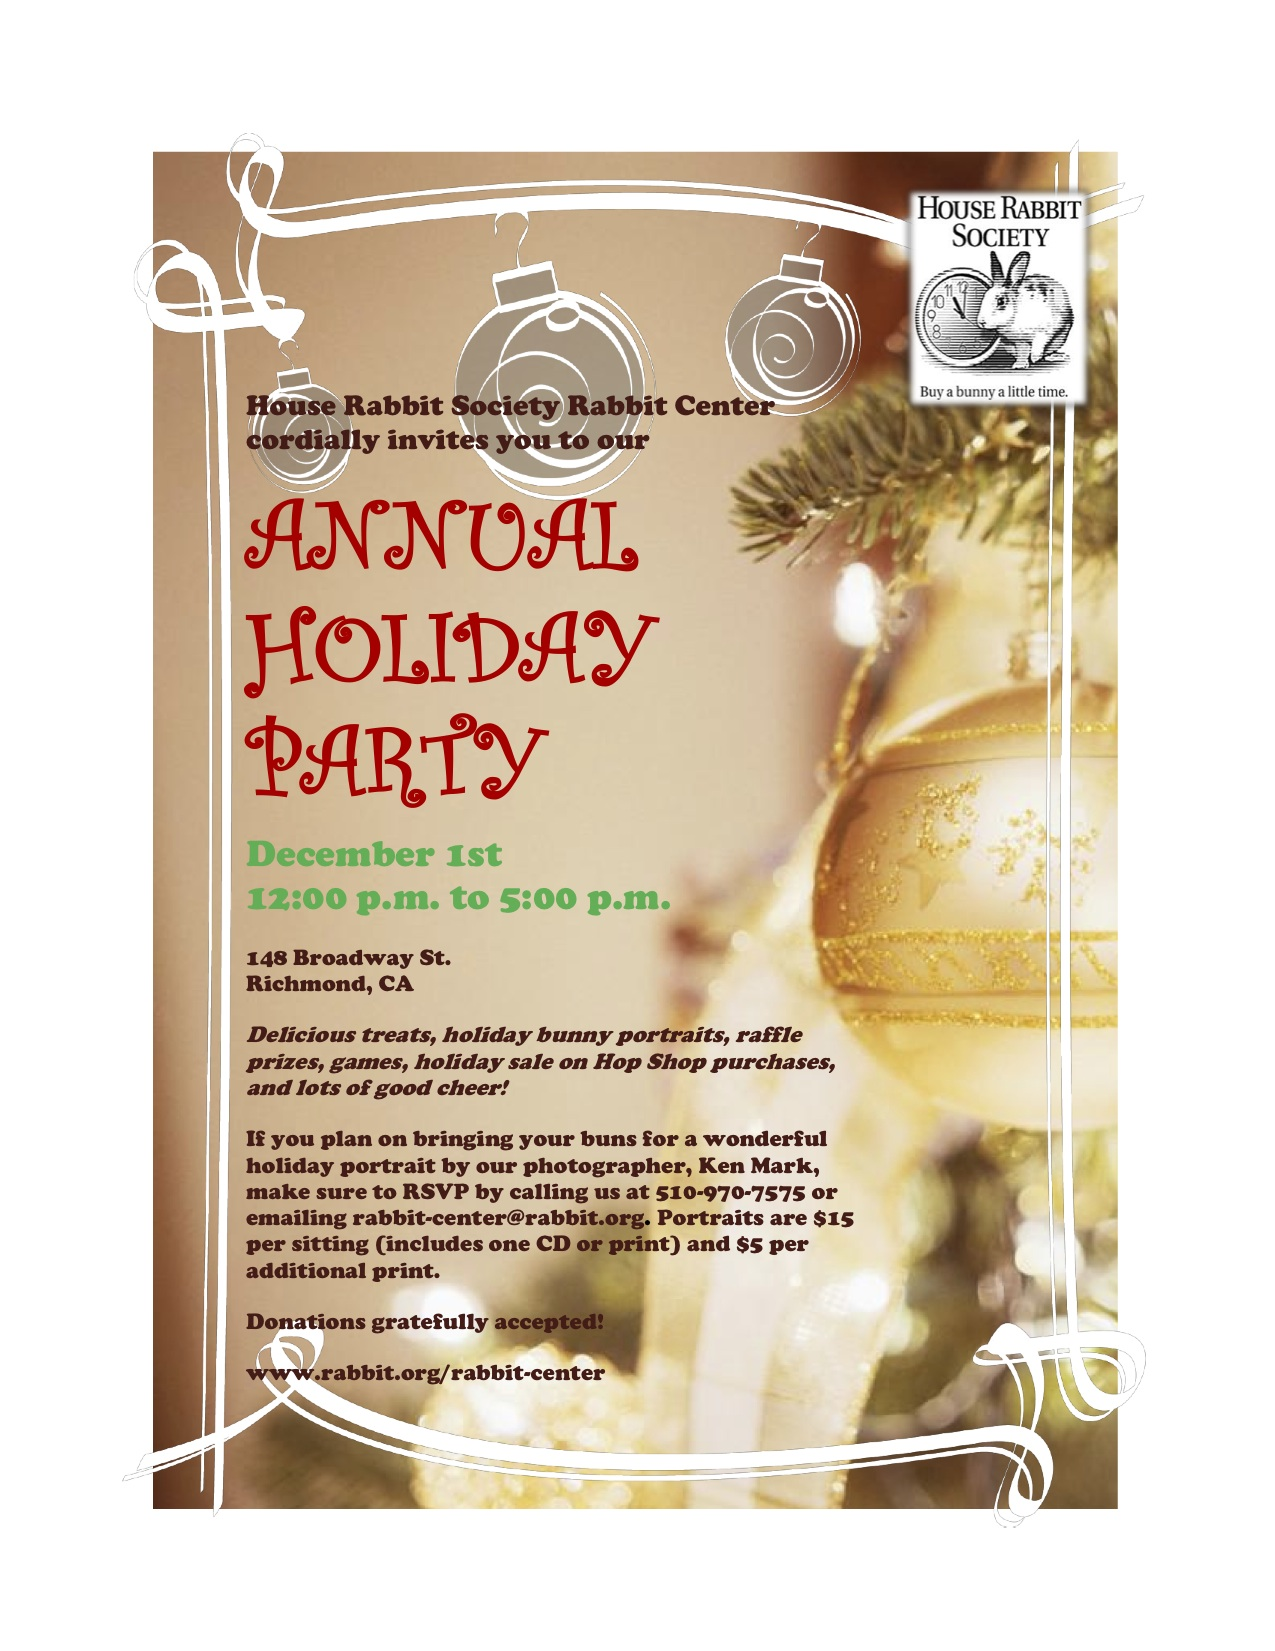 Holiday Office Party Themes